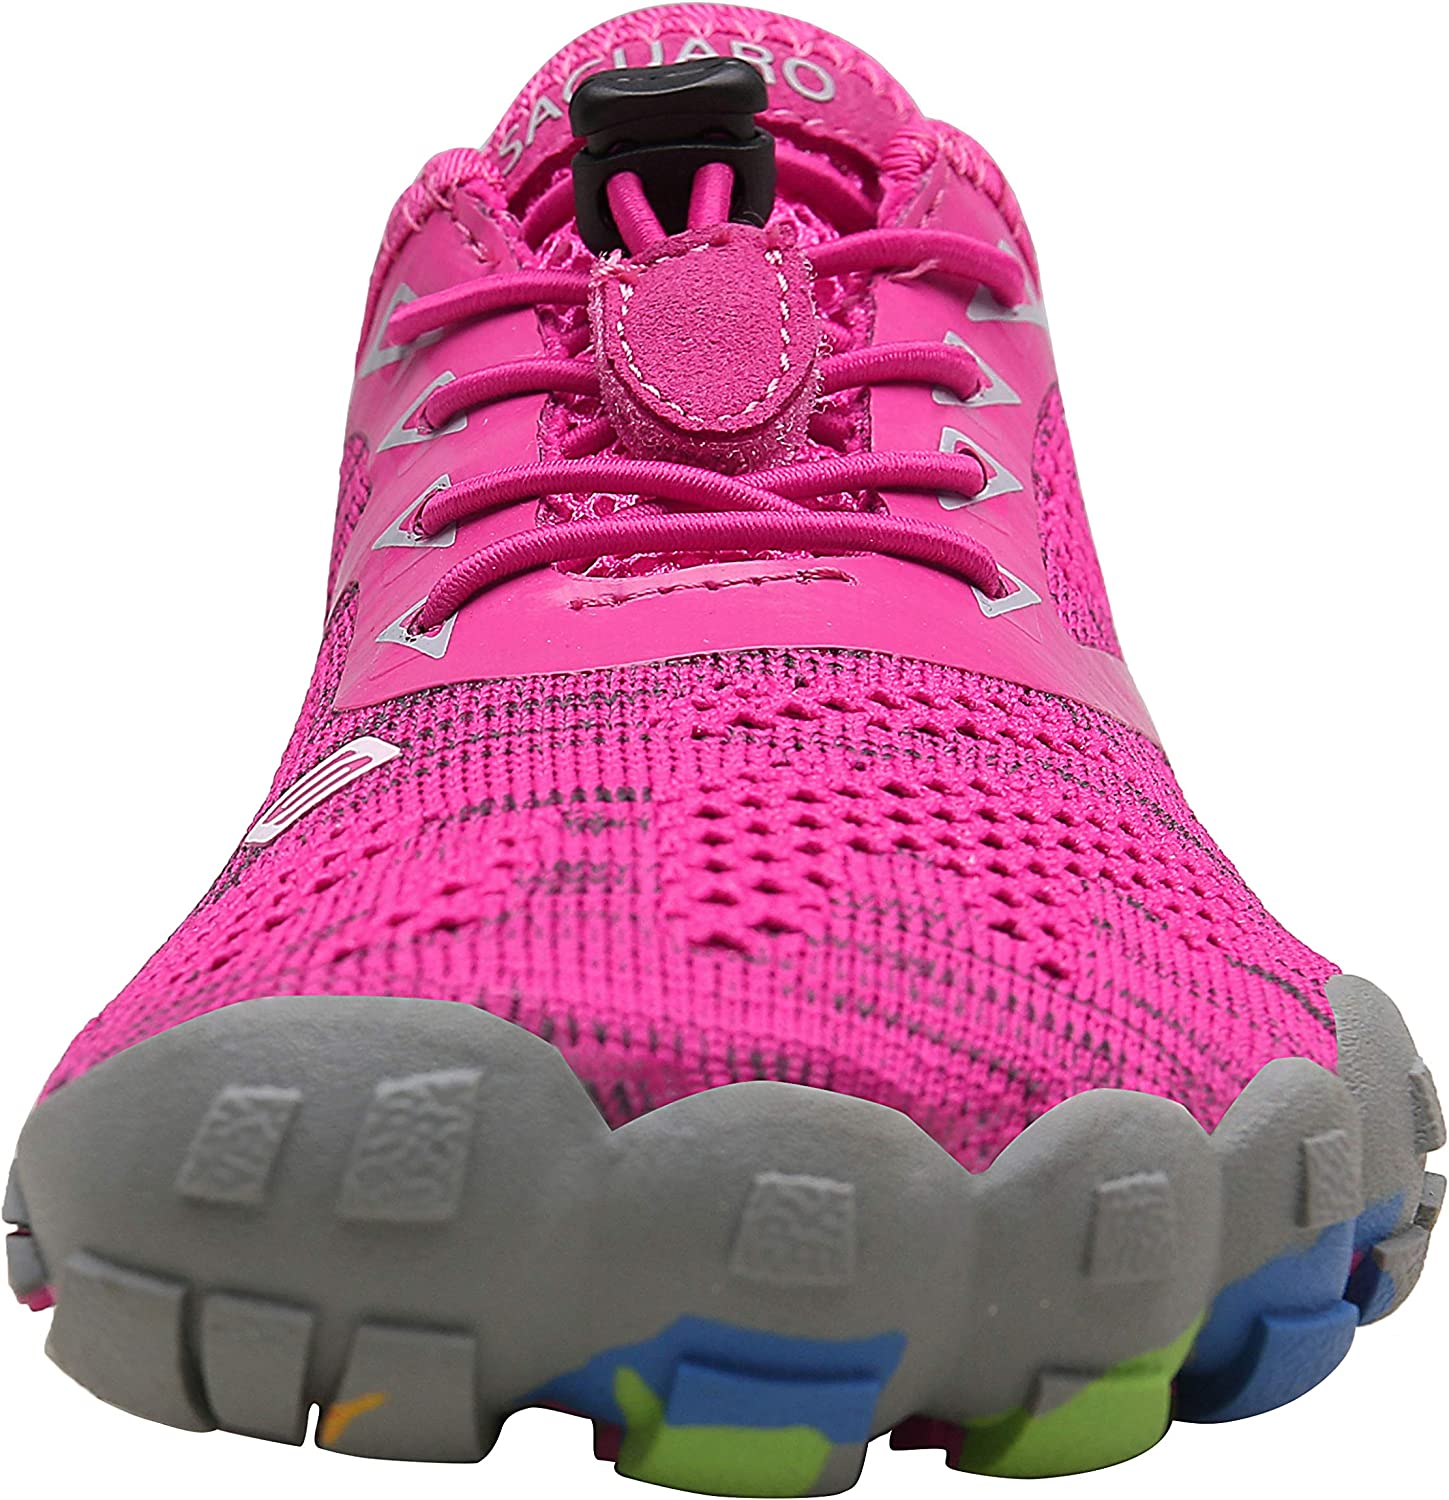 SAGUARO Chaussures Minimalistes Hommes Femmes Chaussures de Fitness Trail Running 36-47 Tricot Rose Rouge